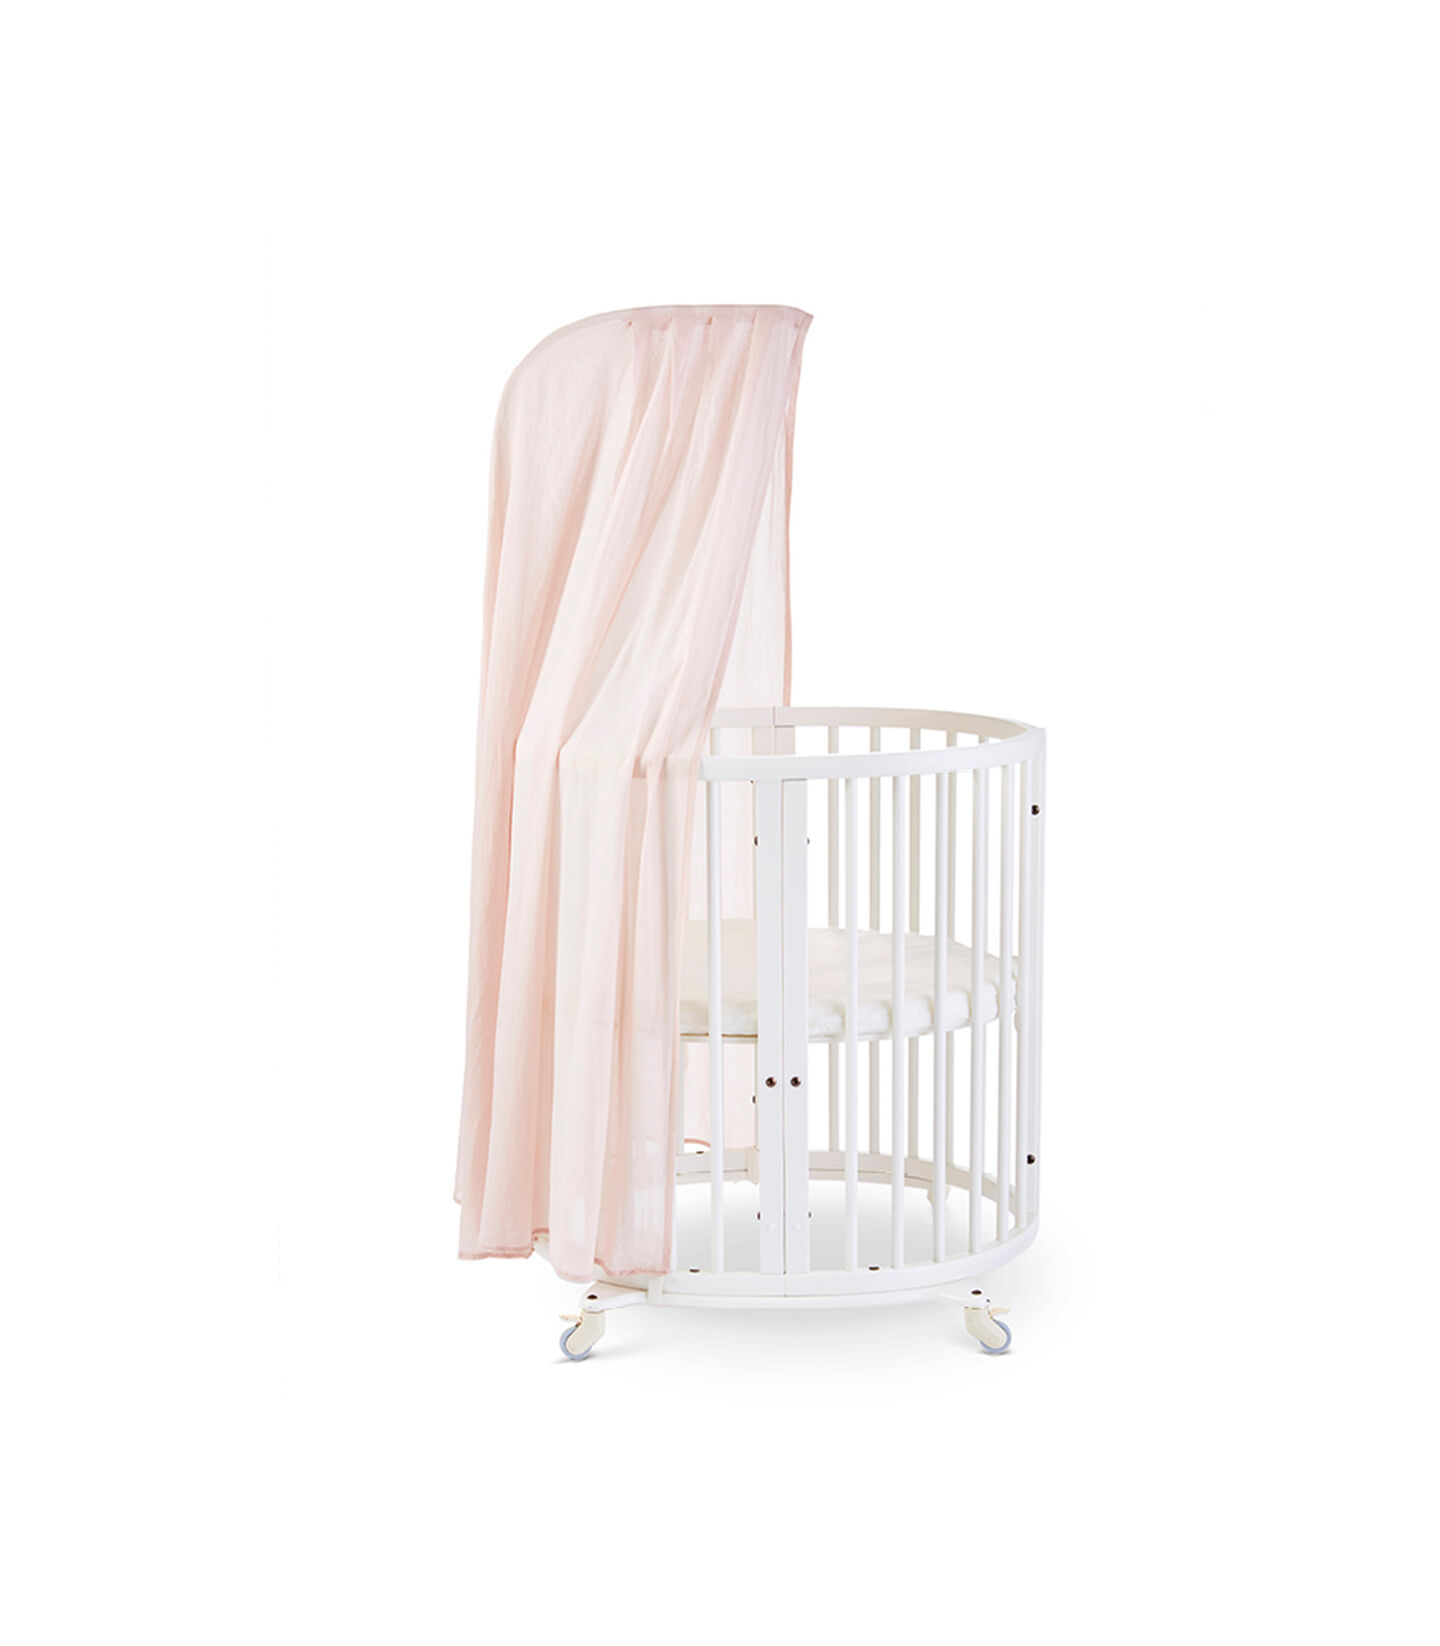 Stokke® Sleepi™ Mini, White. Canopy Pehr Blush. US only.